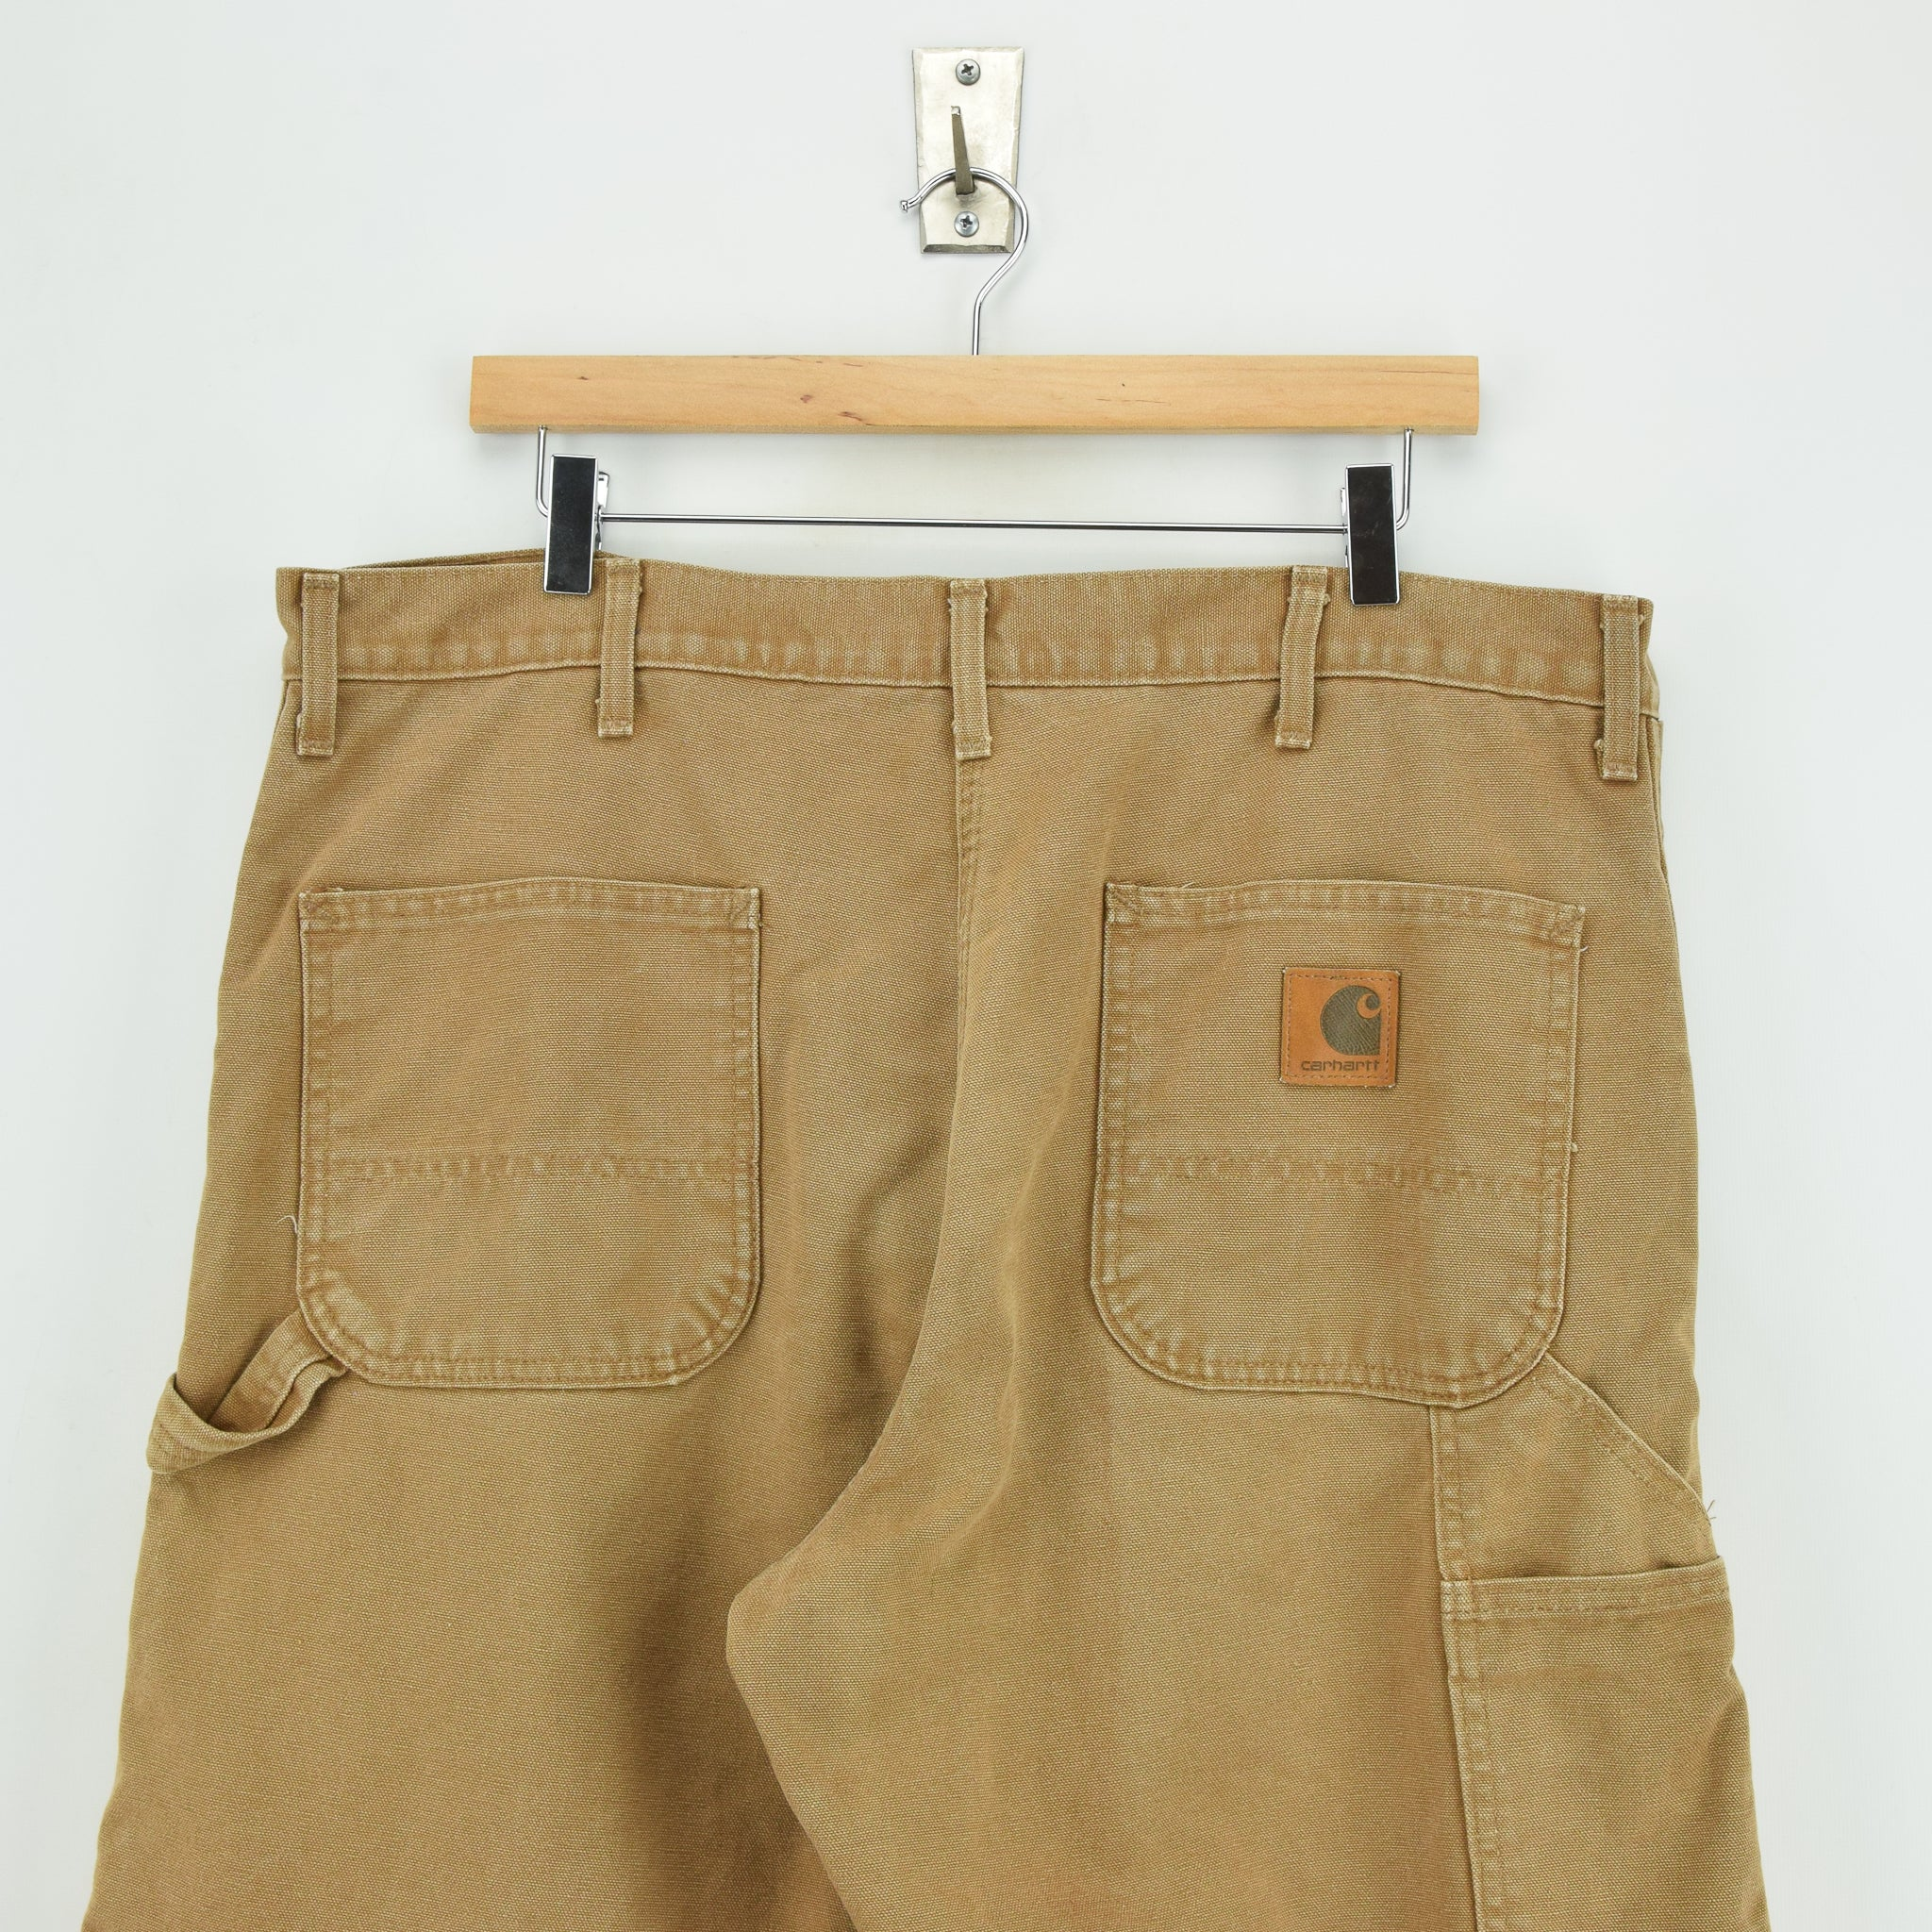 Vintage Carhartt Duck Canvas Utility Work Pant Blanket Lined USA Made 38 W 30 L back waist